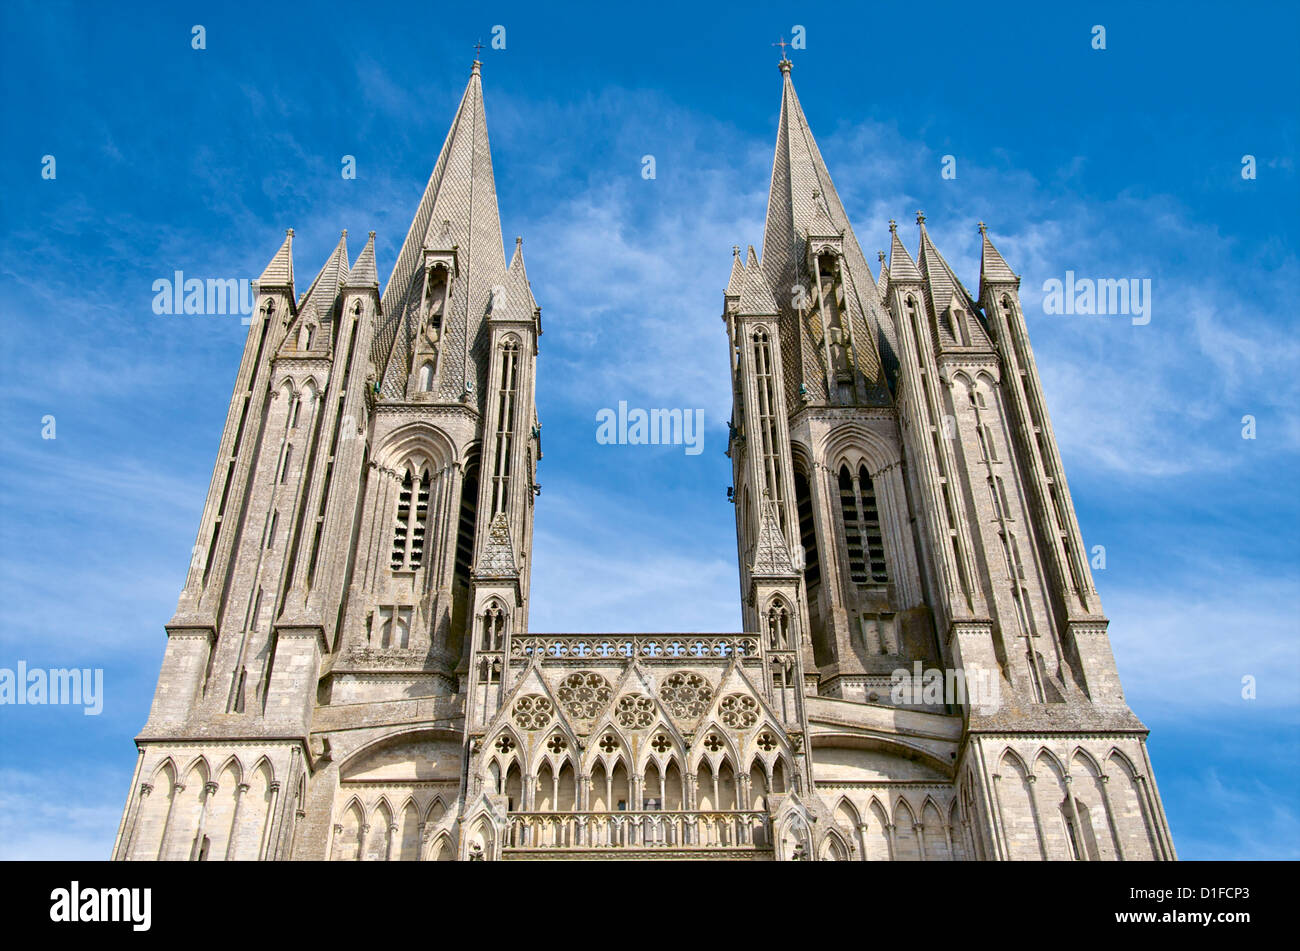 Detail of Notre Dame cathedral dating from the 14th century, Coutances, Cotentin, Normandy, France, Europe - Stock Image